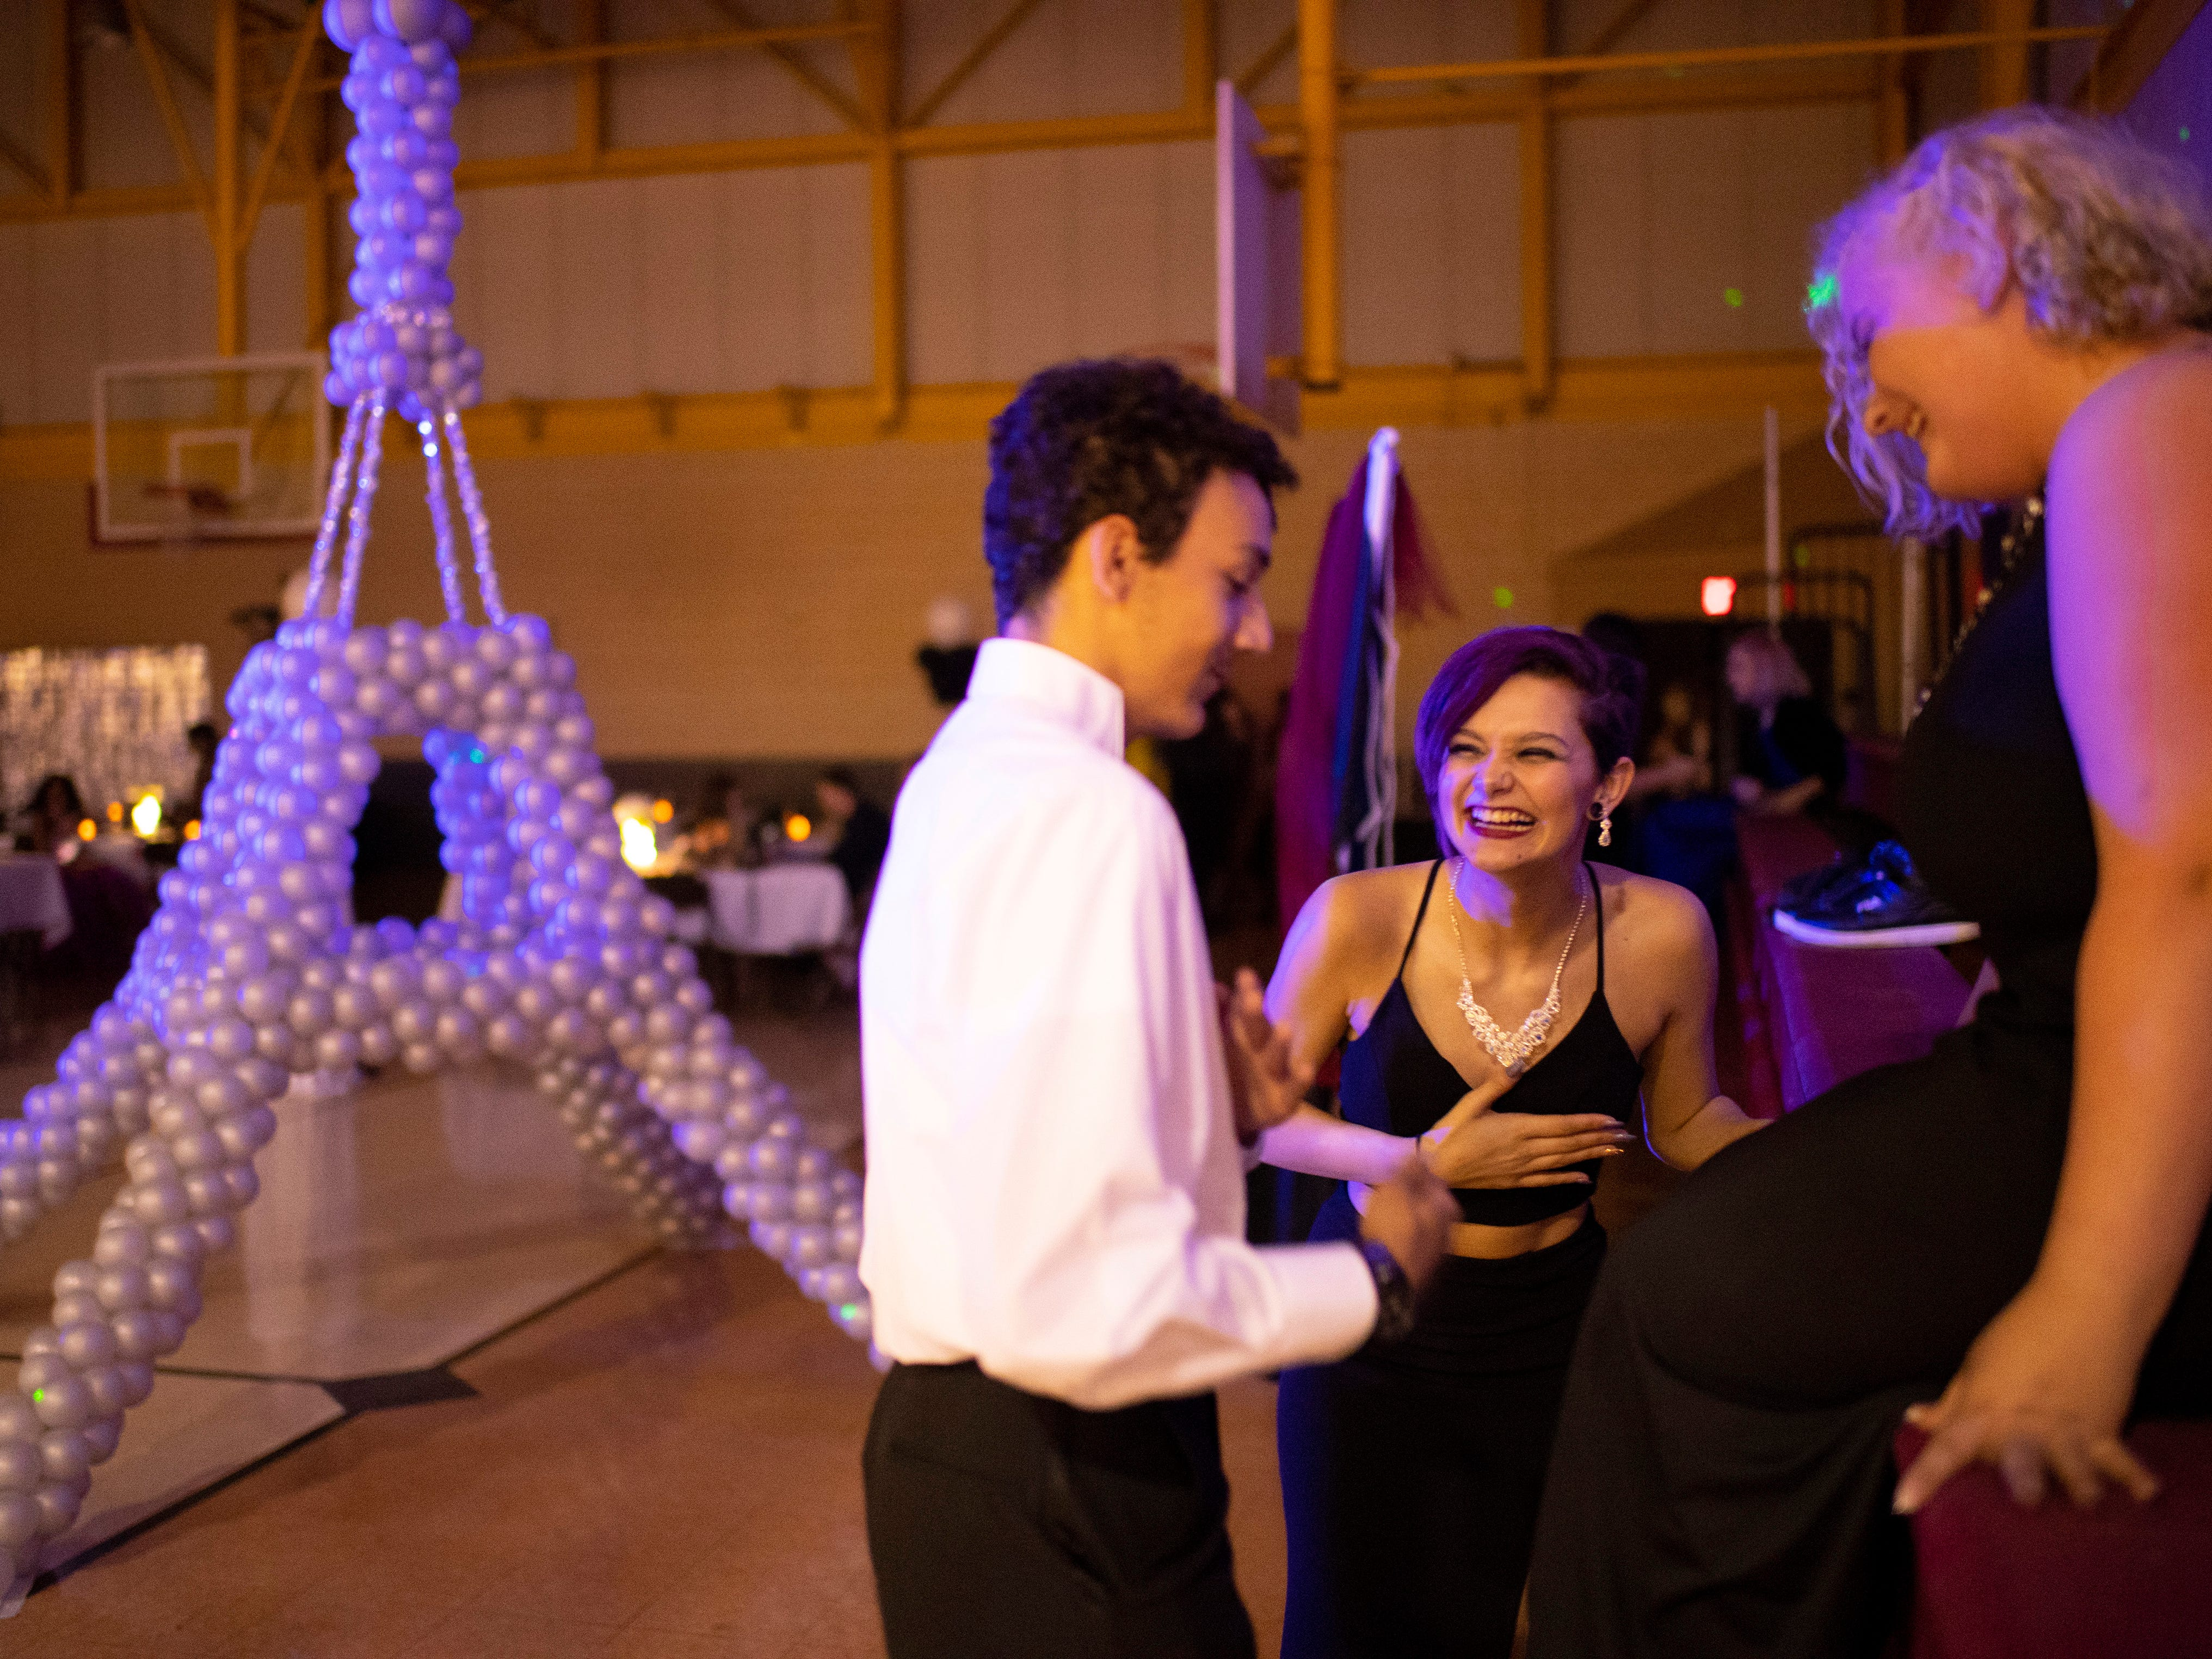 Students, from left, Hudson Kiesel, 17, Lillian Tirey, 17, and Megan Monroe, 17, dance near the bleachers during A Night in Paris at the Harwood Career Prep prom Saturday night.